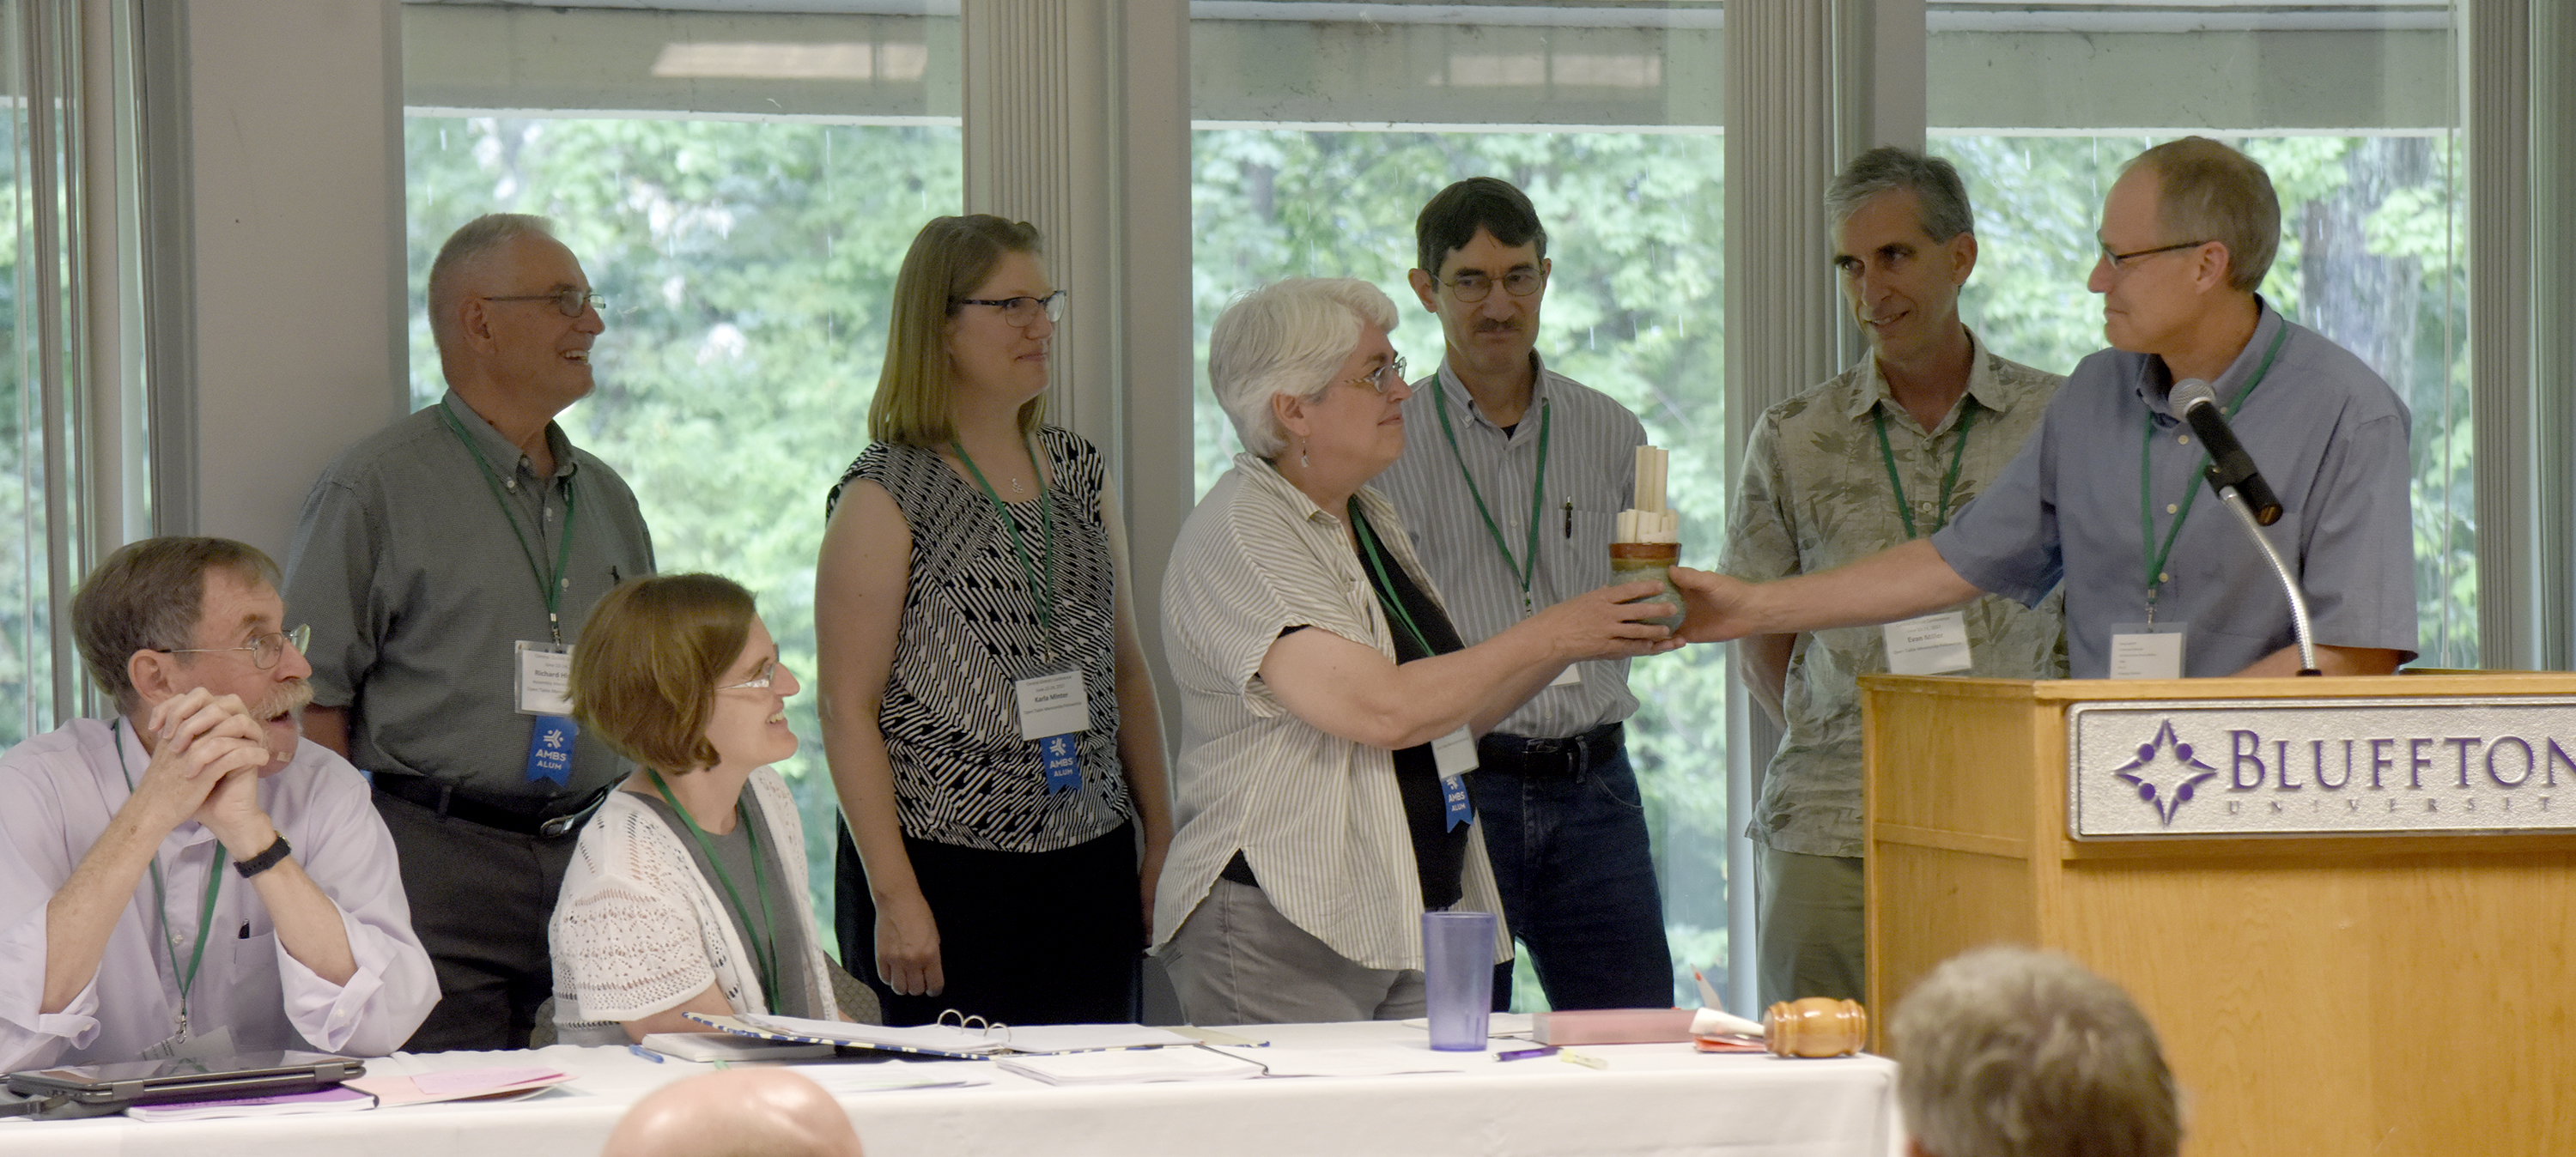 Doug Luginbill (right) hands a cup containing written blessings from Central District churches to Sally Weaver Glick, as Open Table Fellowship, Goshen, IN, was welcomed into Central District during the Central District Conference, Friday, June 23, 2017, at Bluffton University, Bluffton, OH. Seated from left are: Arman Habegger and Lisa Weaver. Standing with Weaver Glick and Luginbill are (from left) Richard Hirschberg, Karla Minter, John Glick, and Evan Miller. Photograph by J. Tyler Klassen